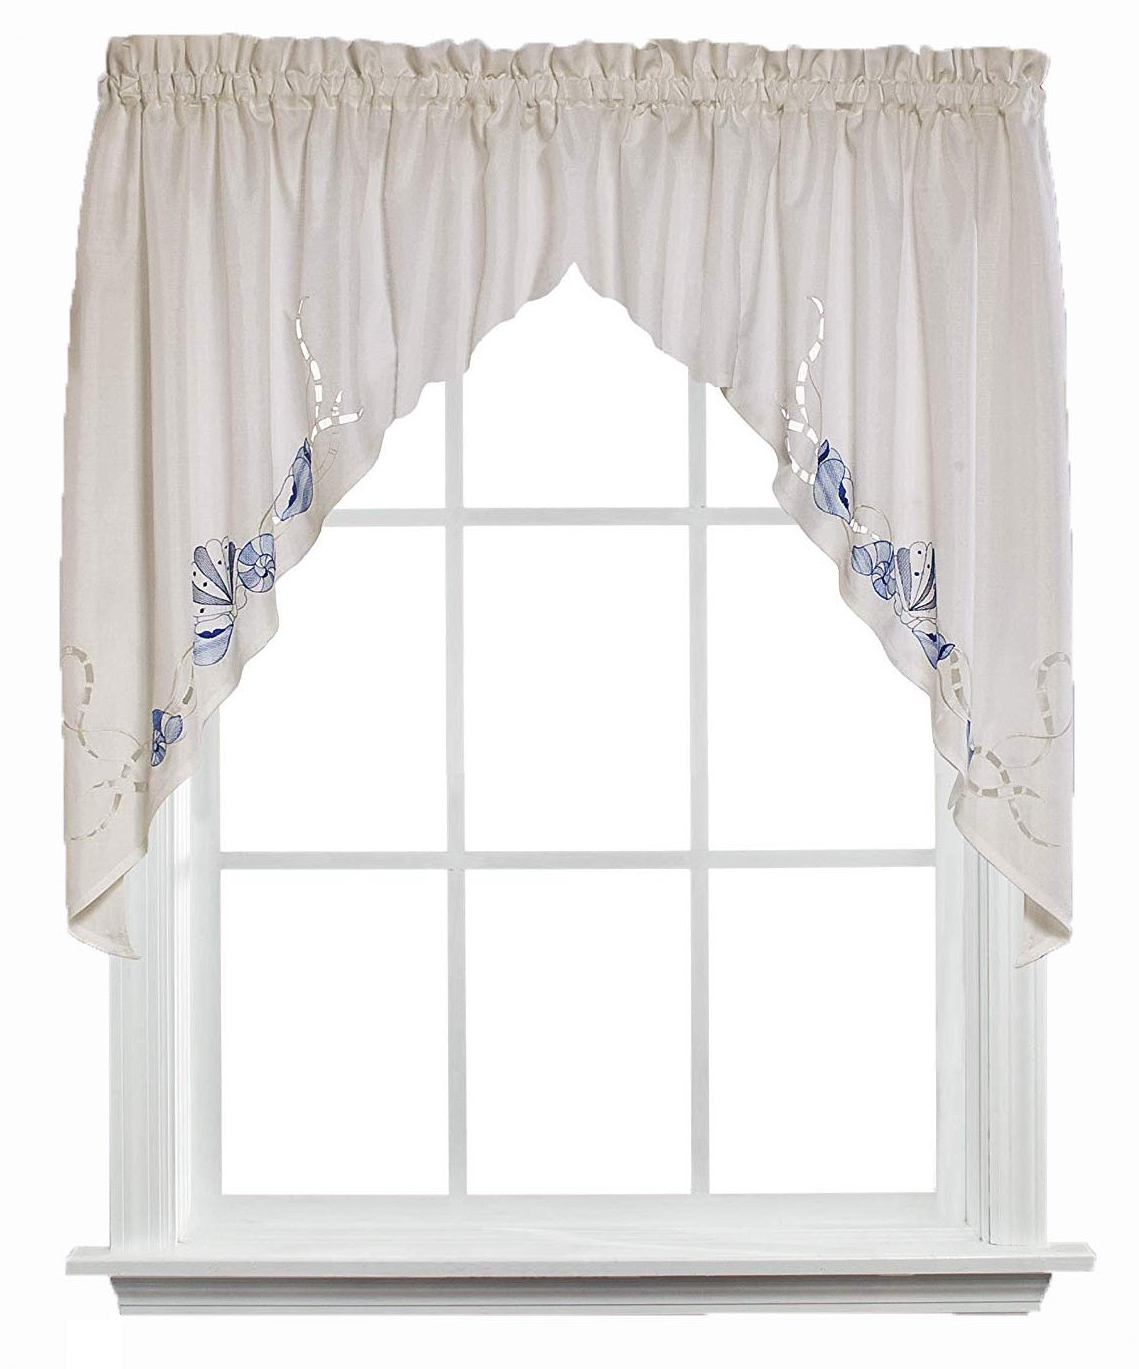 """Details About Saturday Knight Seabreeze Swag Curtain Valance 57"""" X 36"""" With Most Popular Seabreeze 36 Inch Tier Pairs In Ocean (View 3 of 20)"""